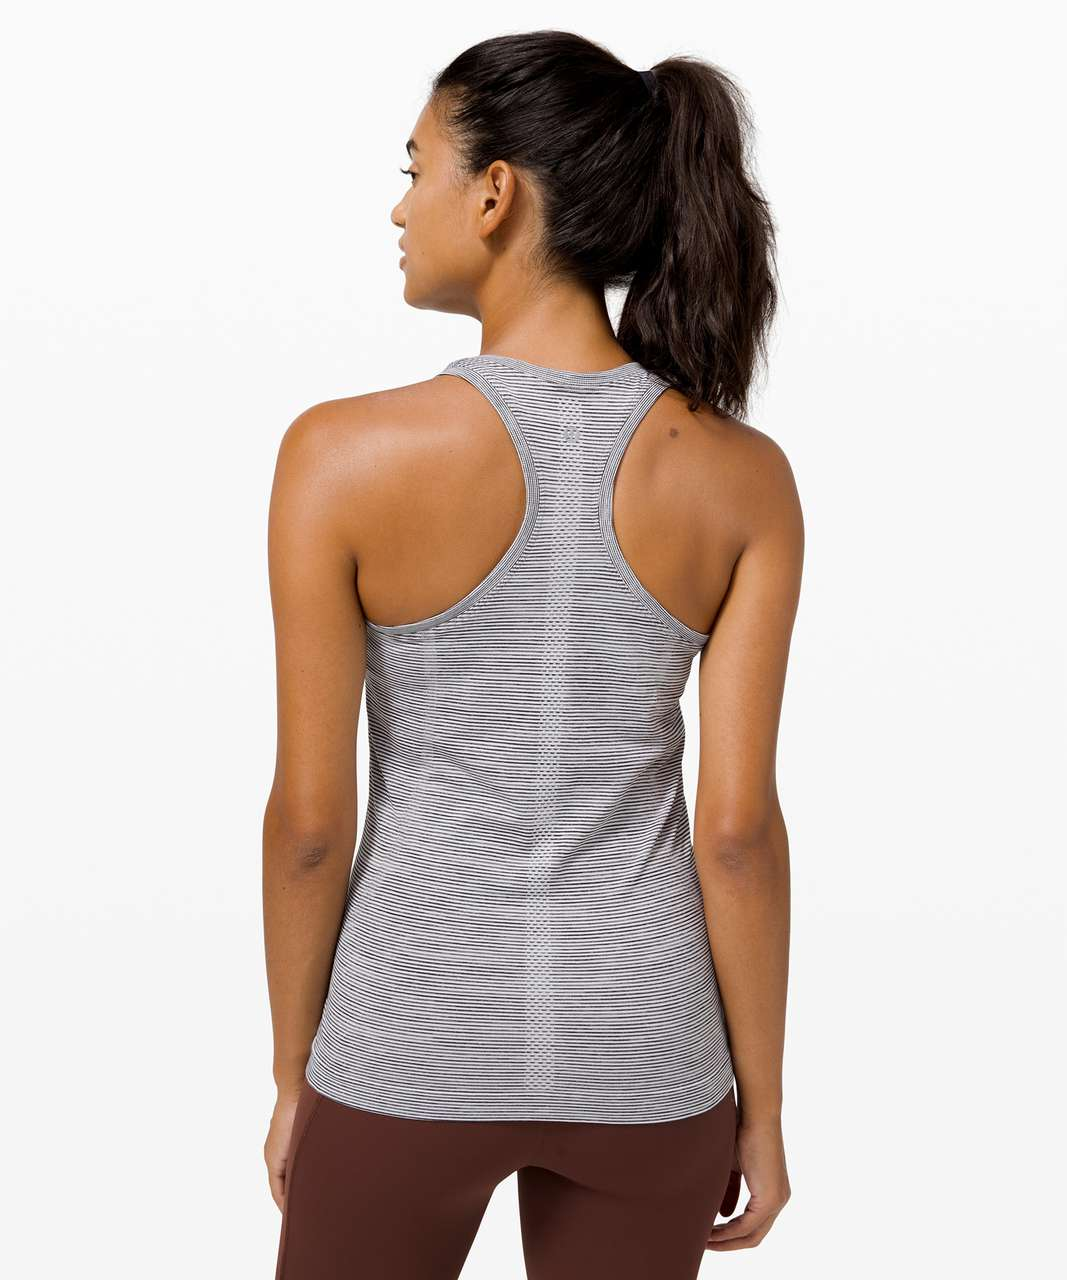 Lululemon Swiftly Tech Racerback 2.0 - Wee Are From Space White